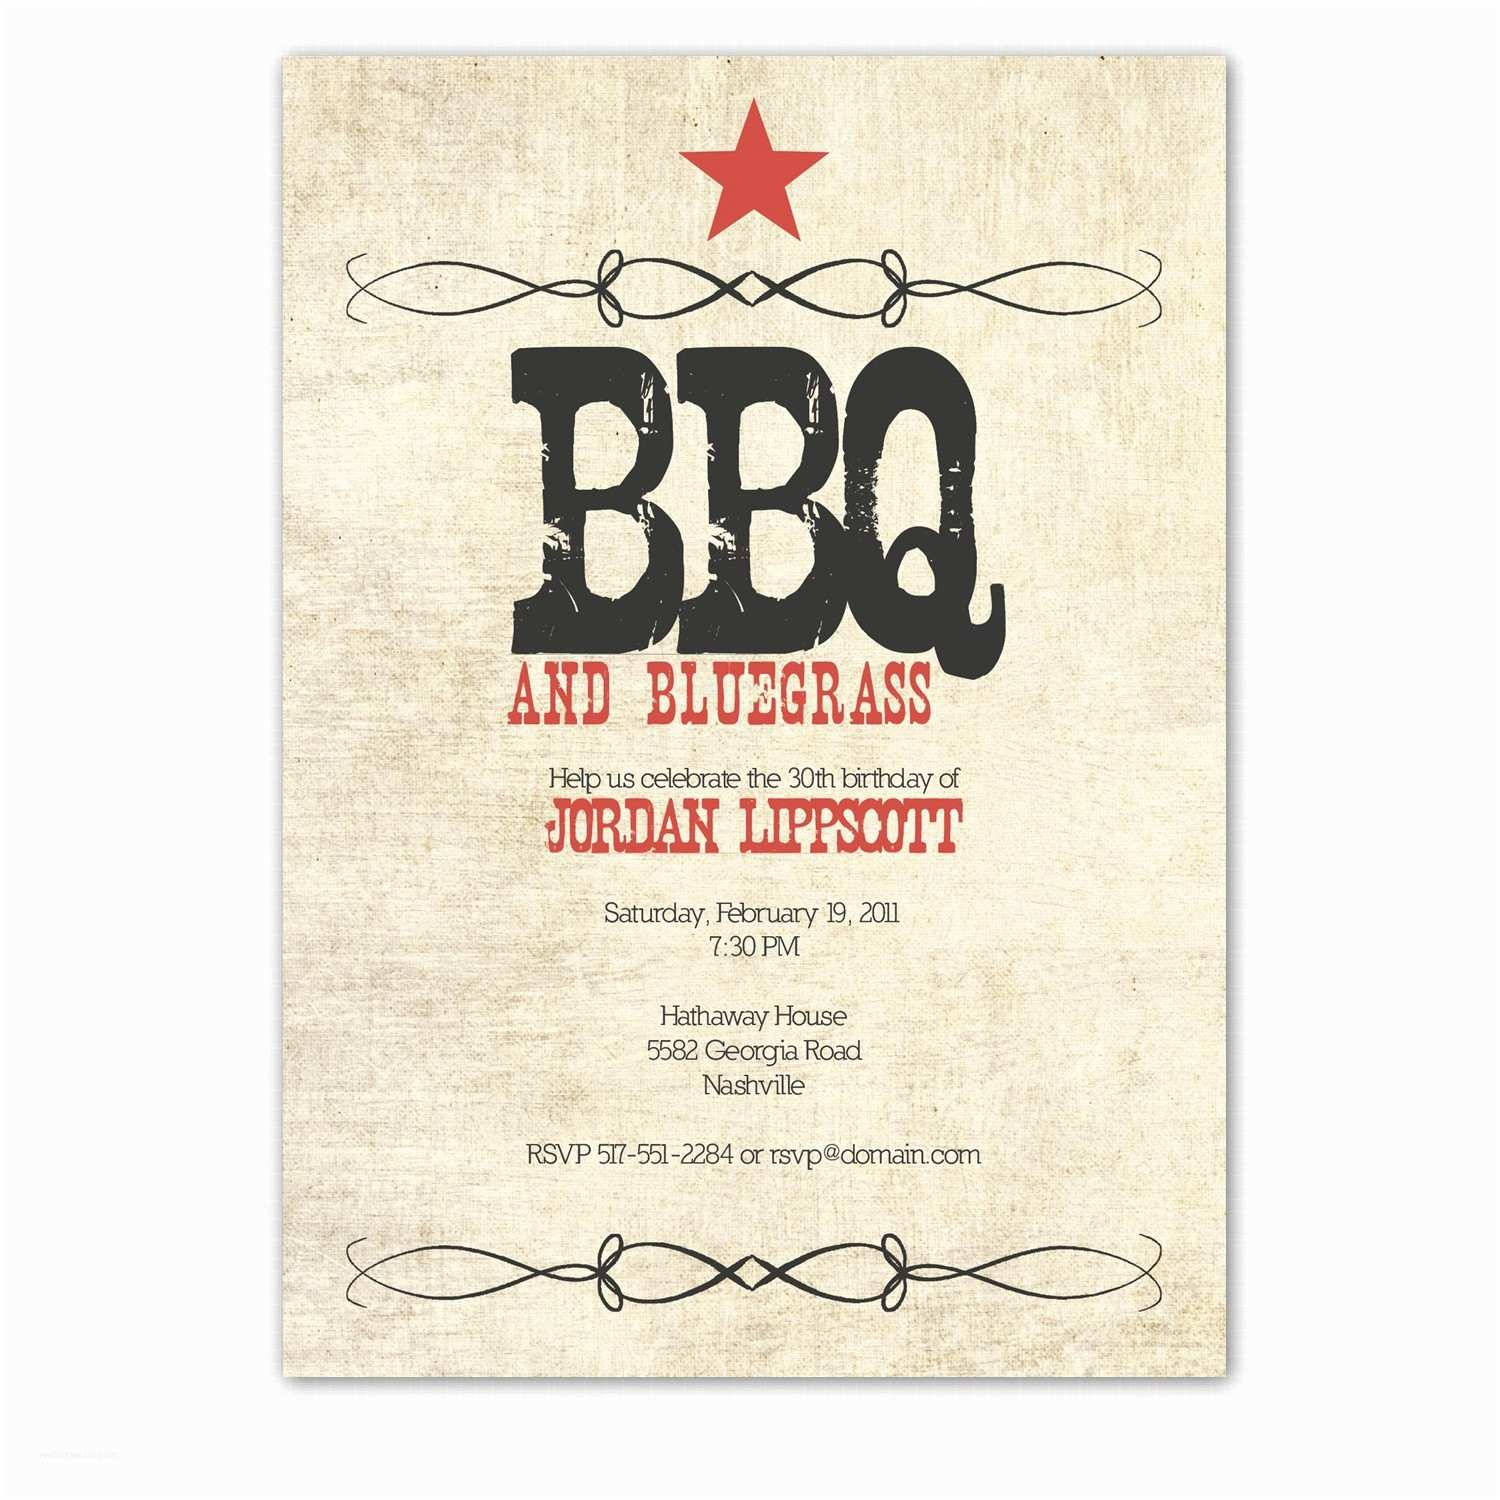 Western Party Invitations Western Birthday Party Invitation Western Bbq Party